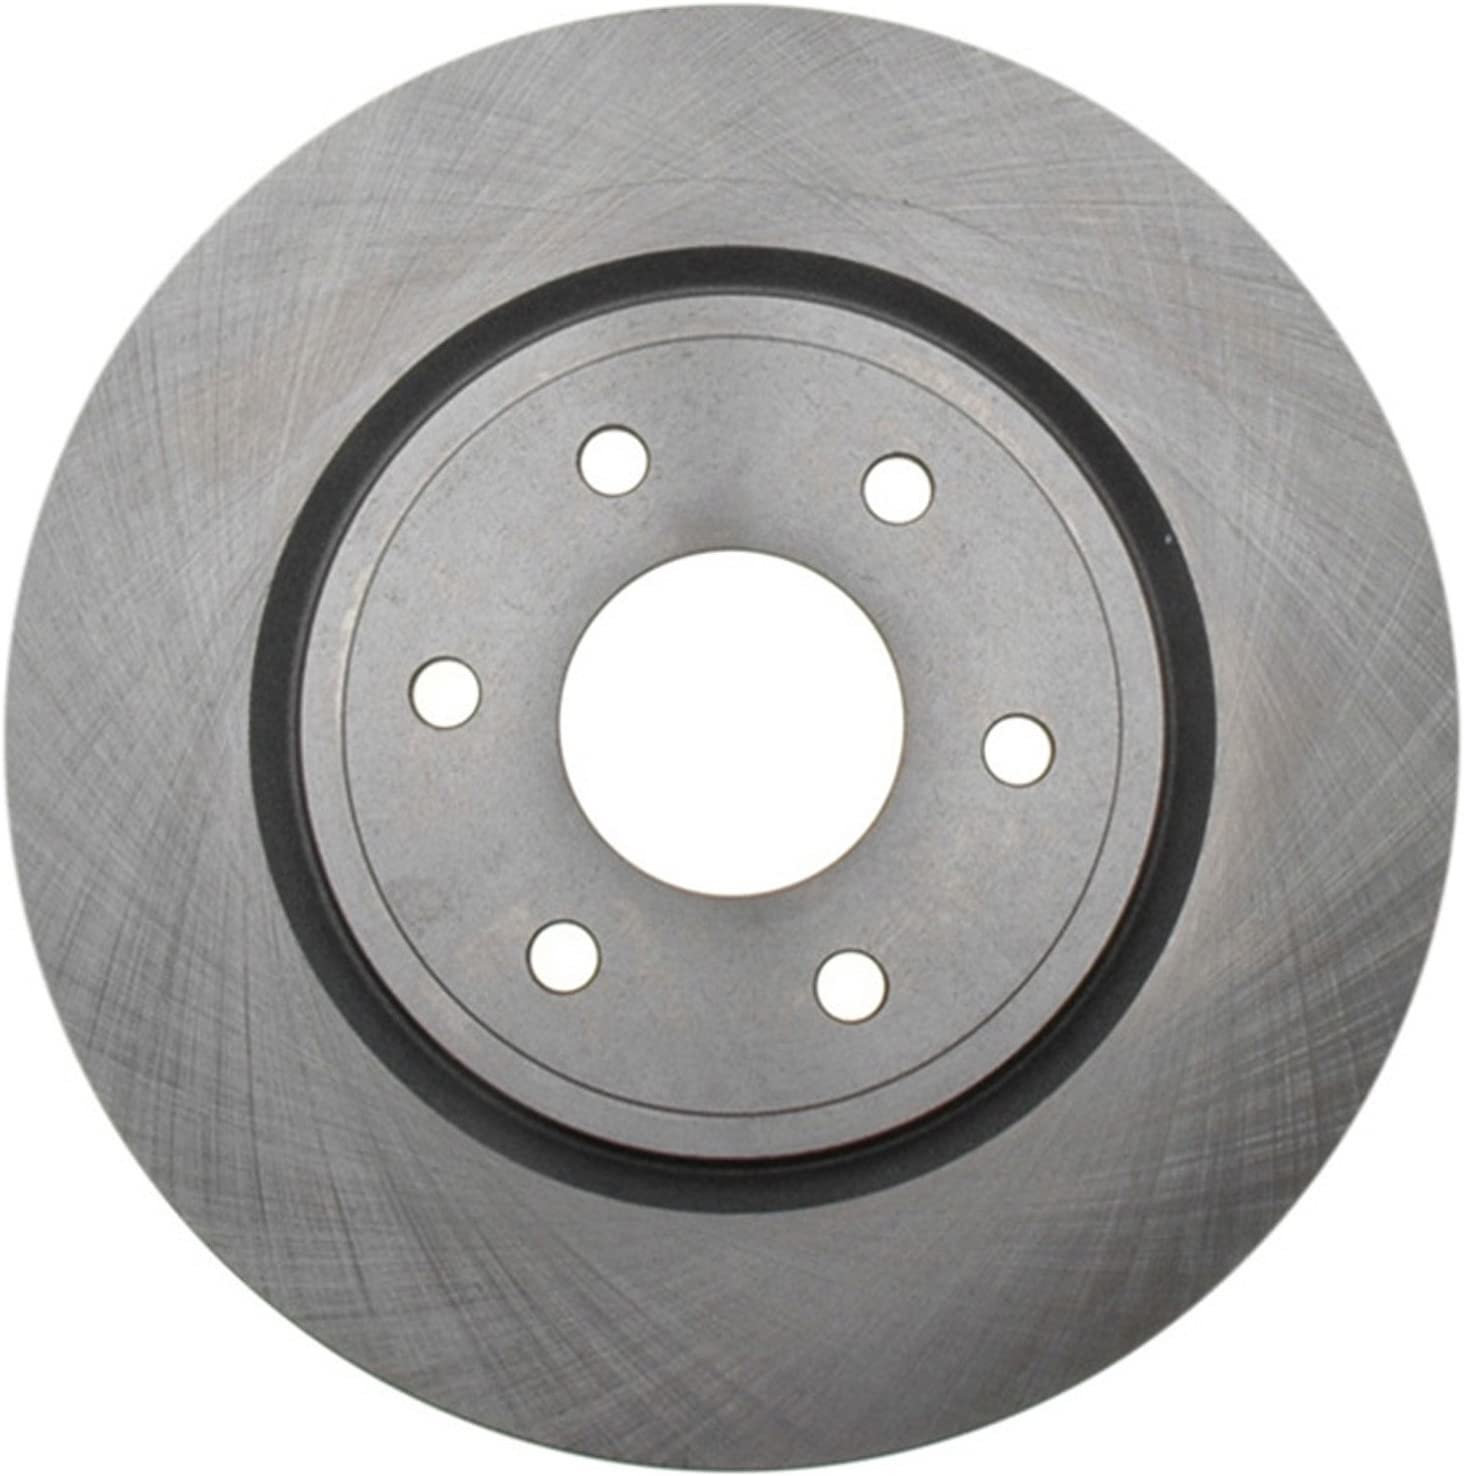 Acdelco 18A2434 Professional Front Disc Brake Rotor